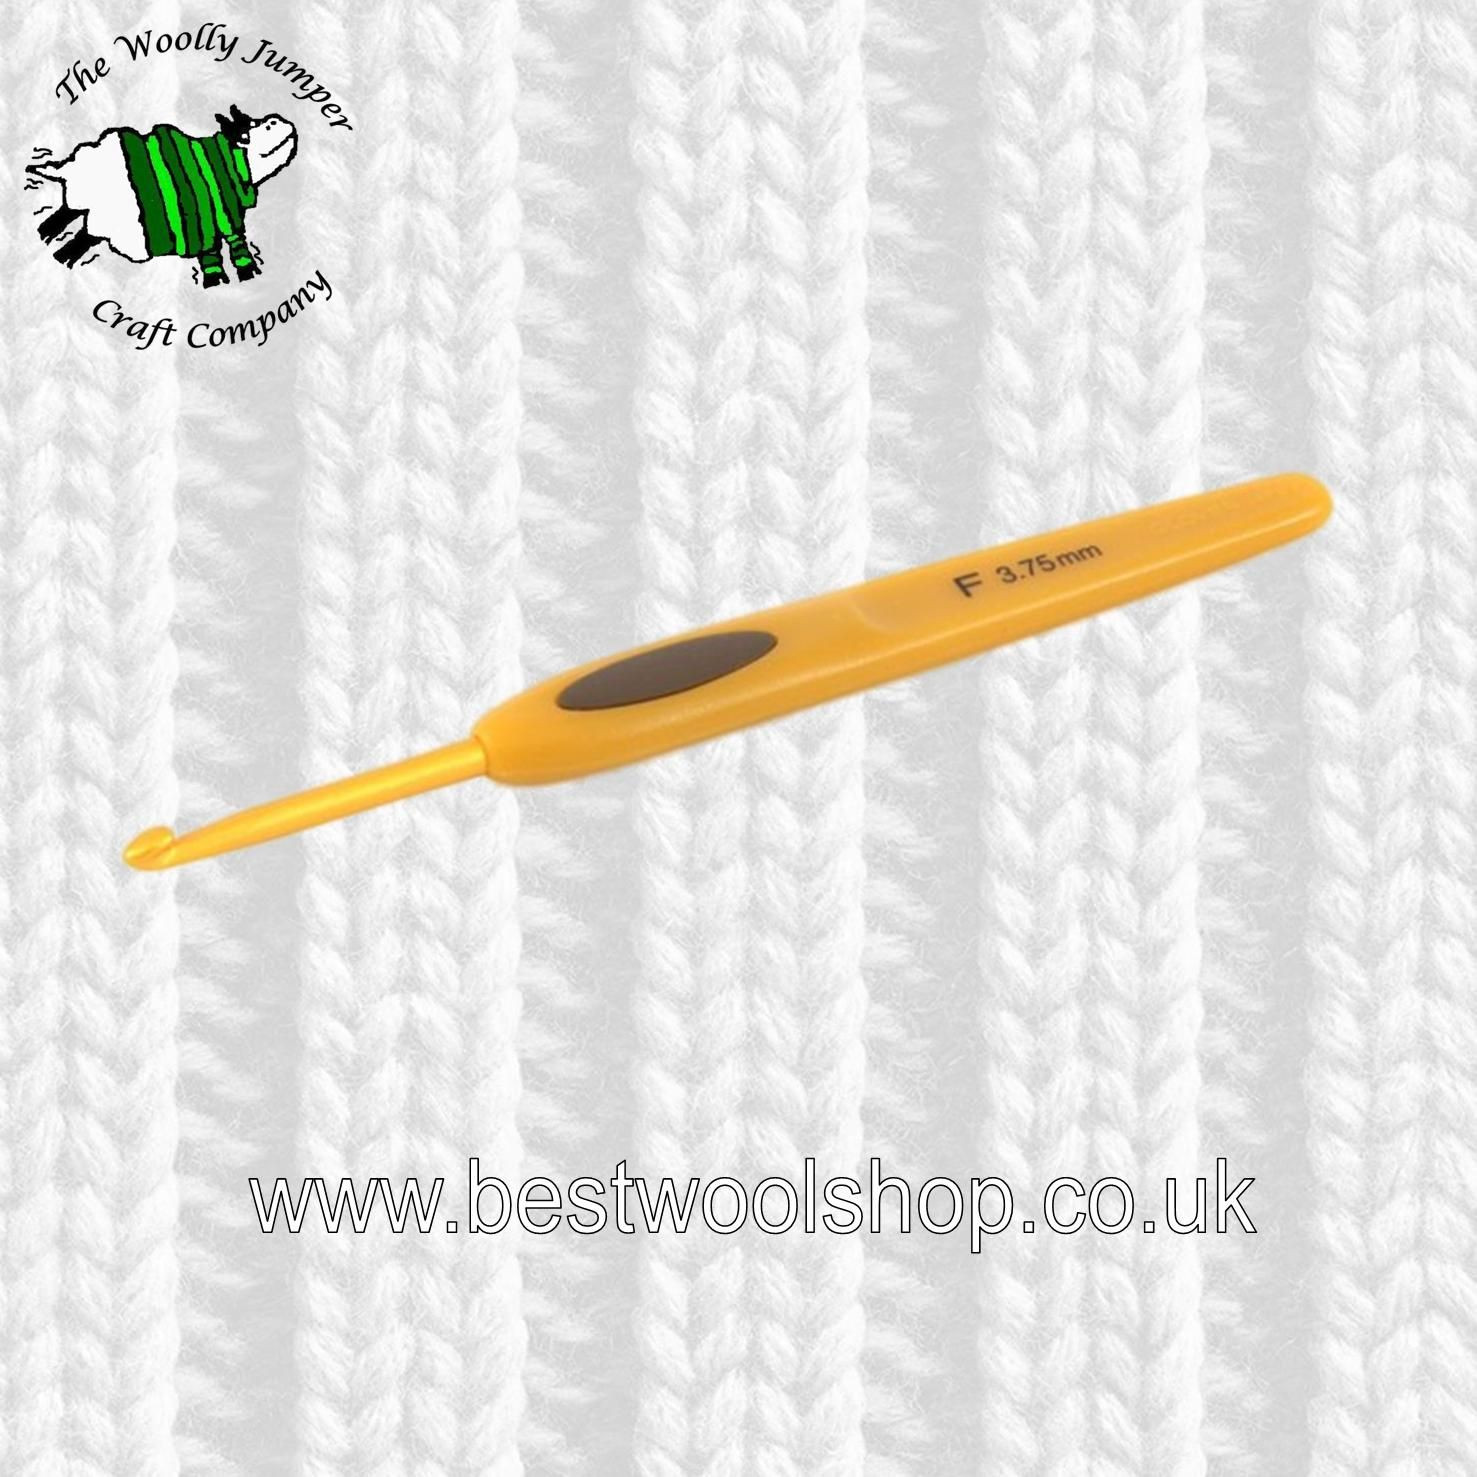 Elegant 3 75 Mm Clover soft touch Crochet Hook F Clover soft touch Crochet Hooks Of Inspirational 6mm Clover soft touch Crochet Hook Clover soft touch Crochet Hooks